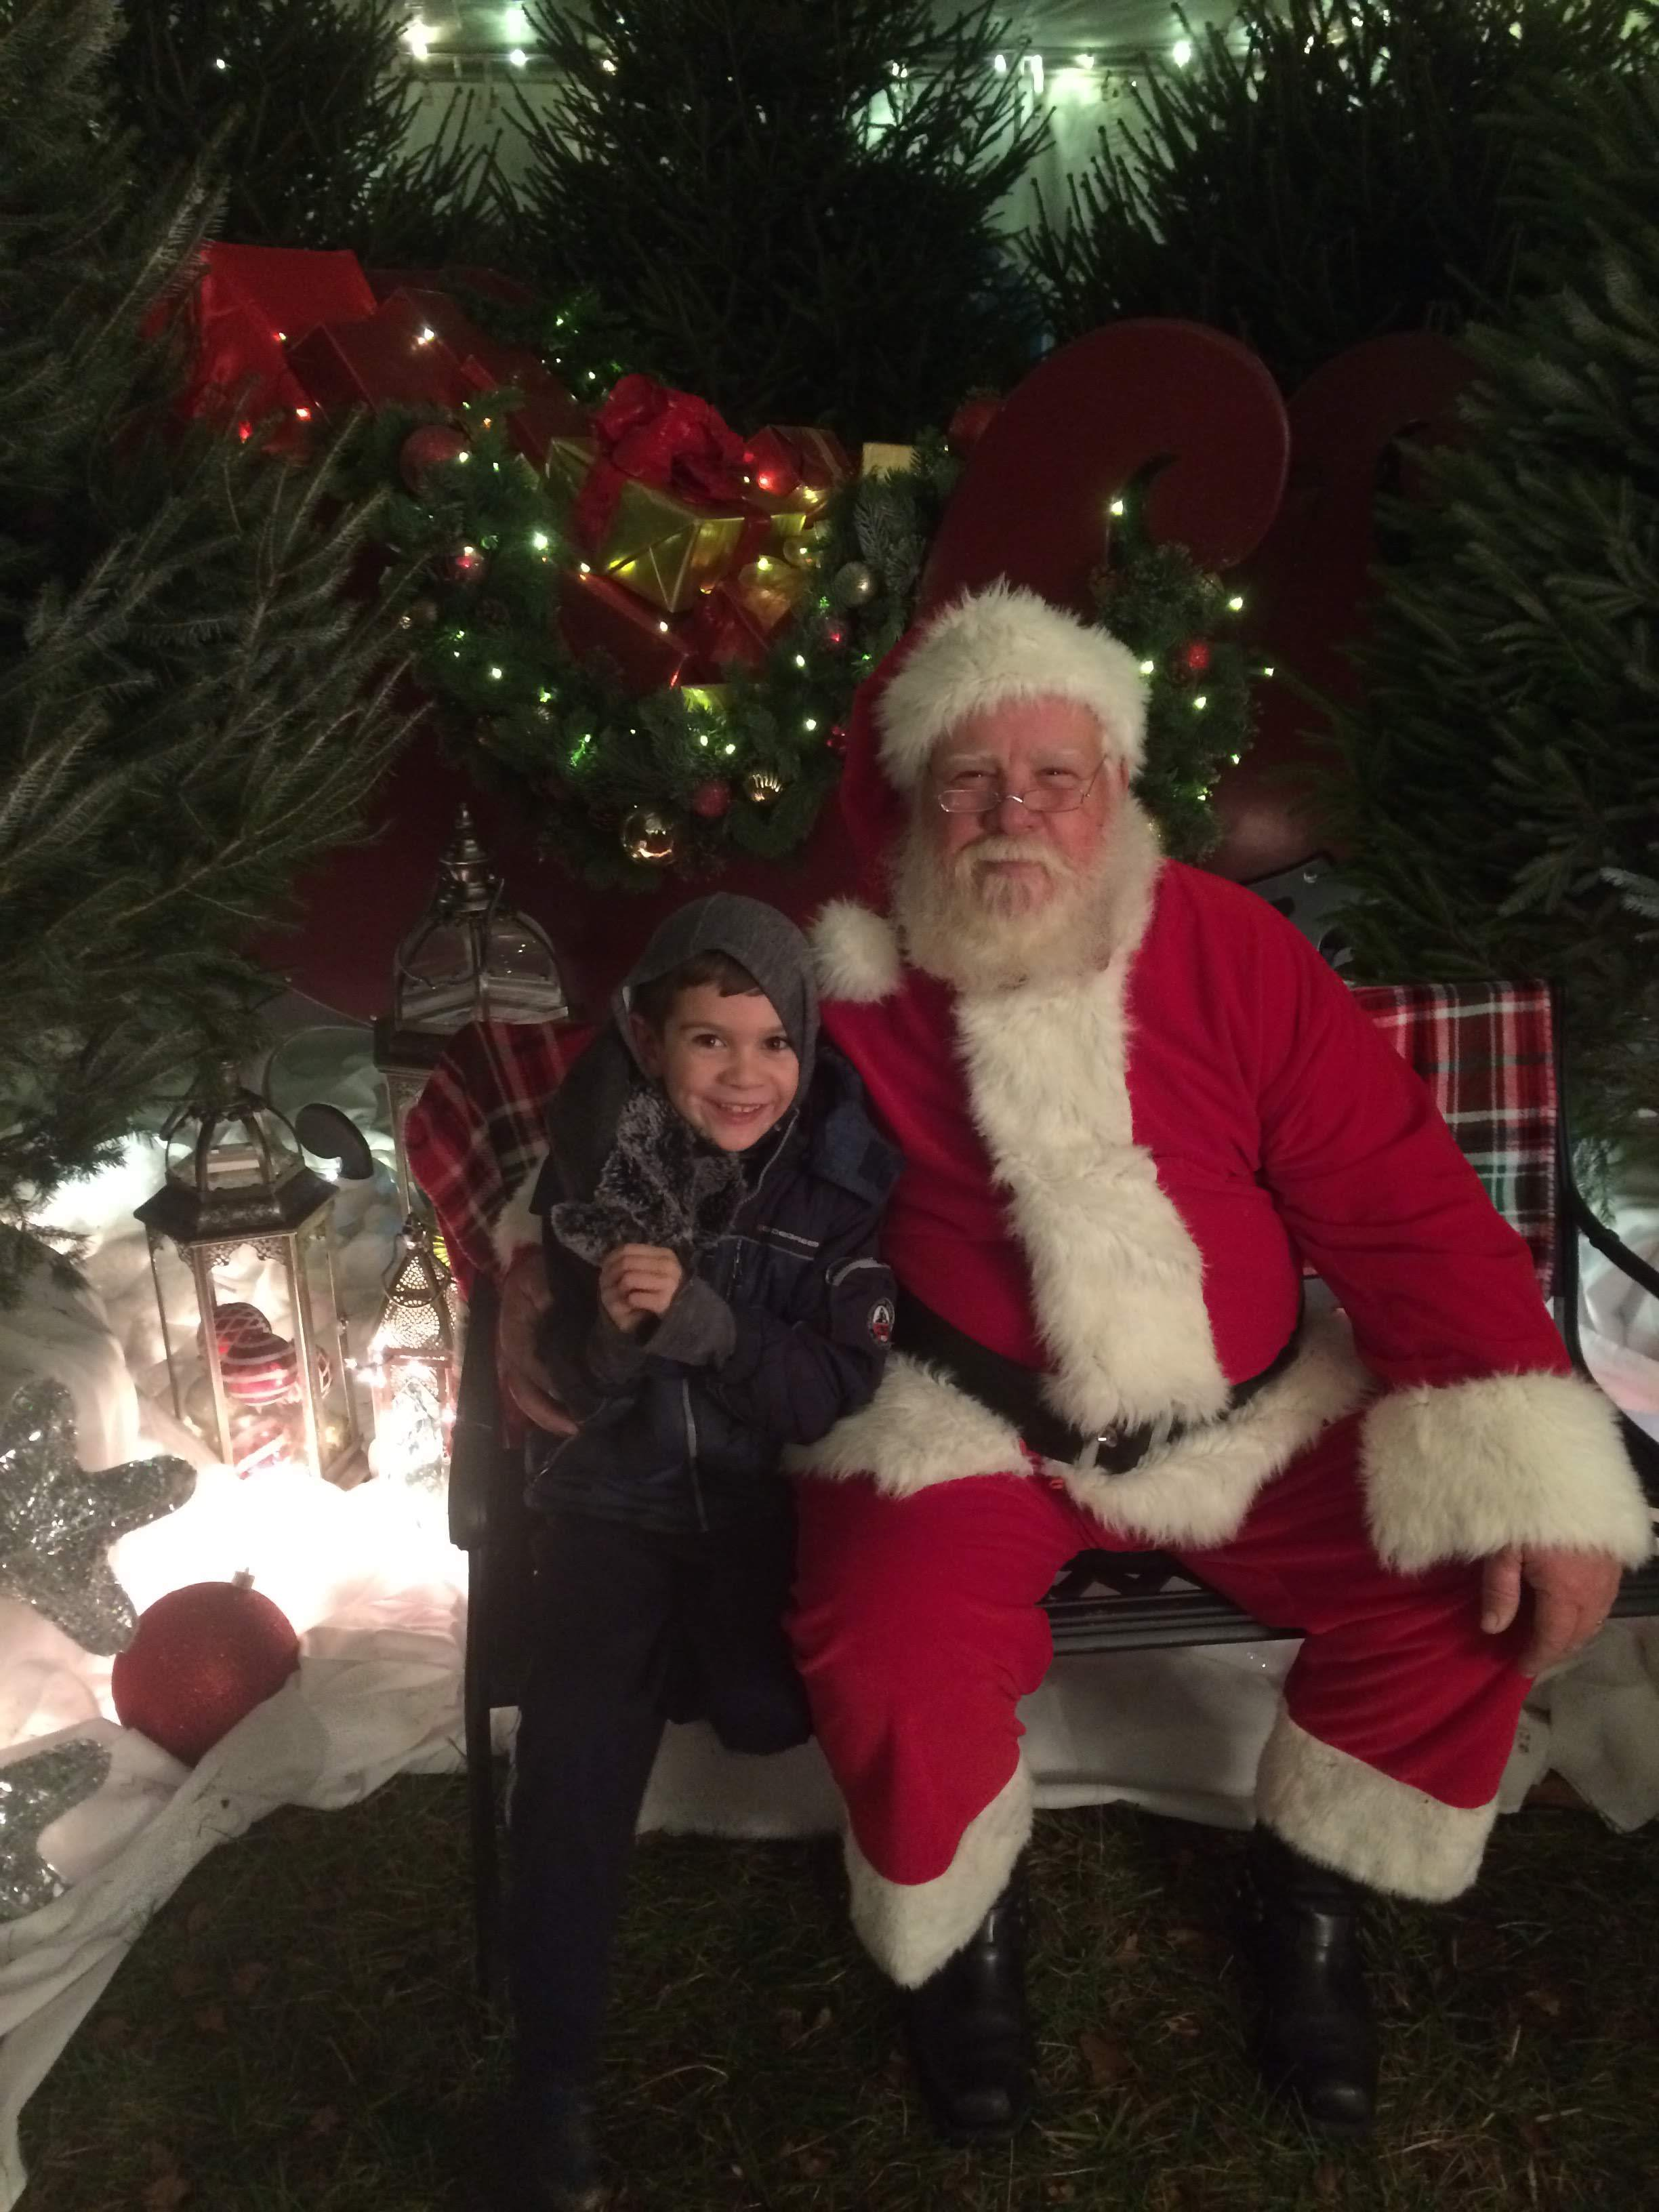 - Max with Santa at the Winter Wonderland in our neighborhood.